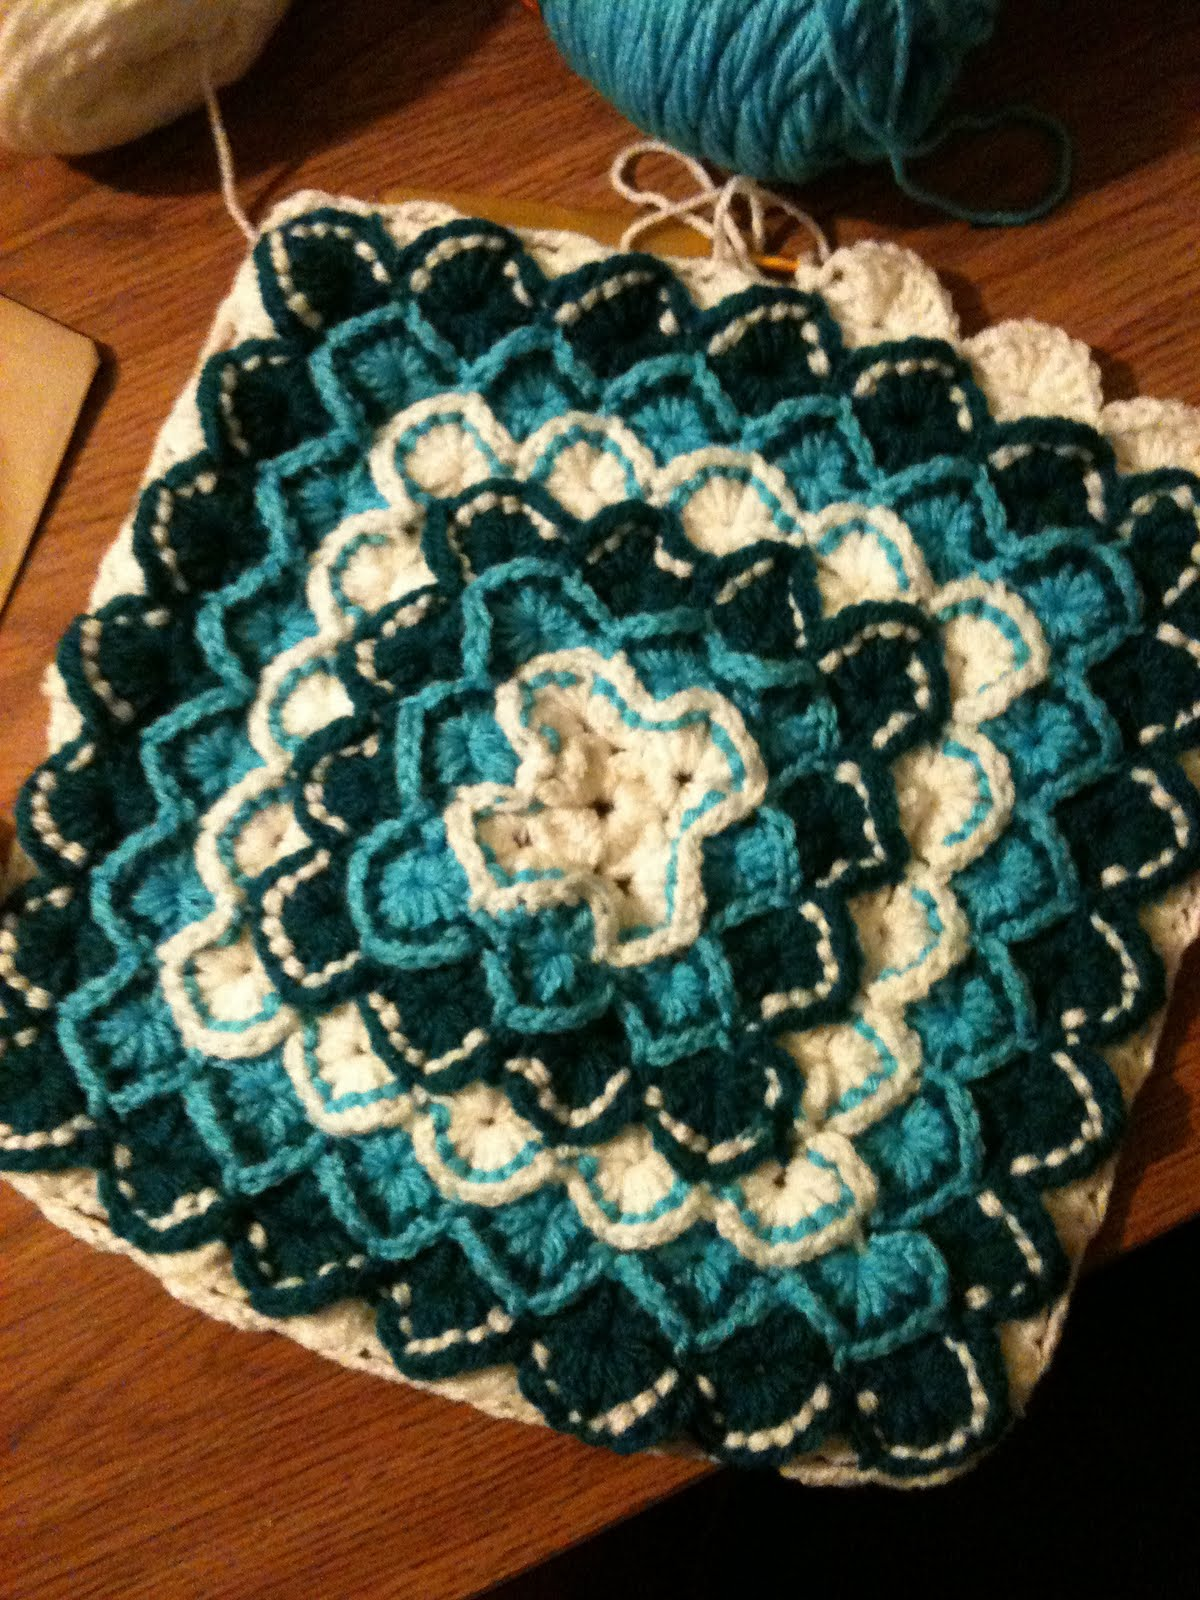 ALKO_Hawaii: New crochet lap blanket